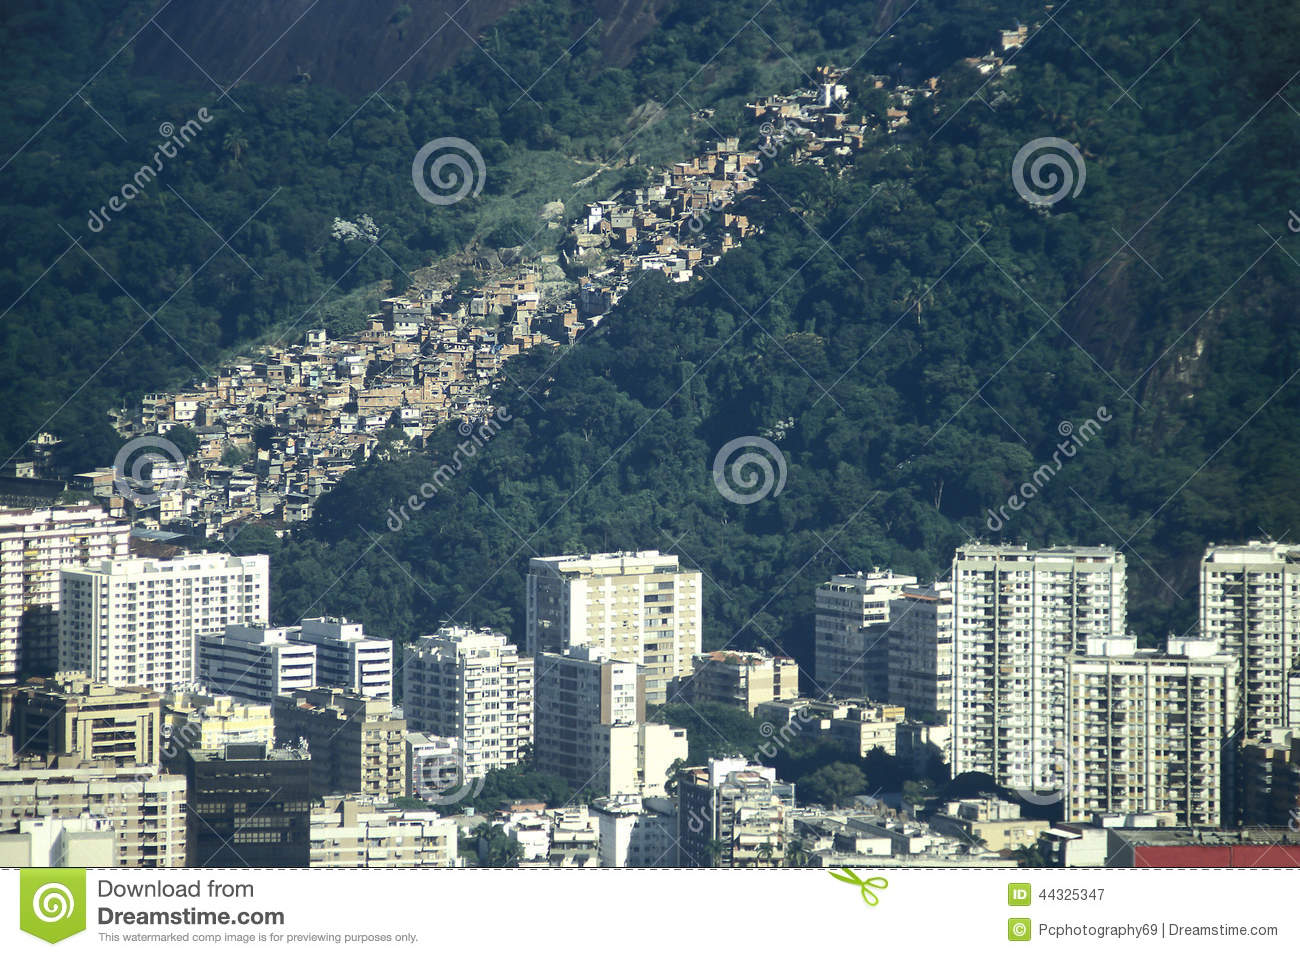 Contrast bewtween richness and poverty in Brazil: skyscrapers an